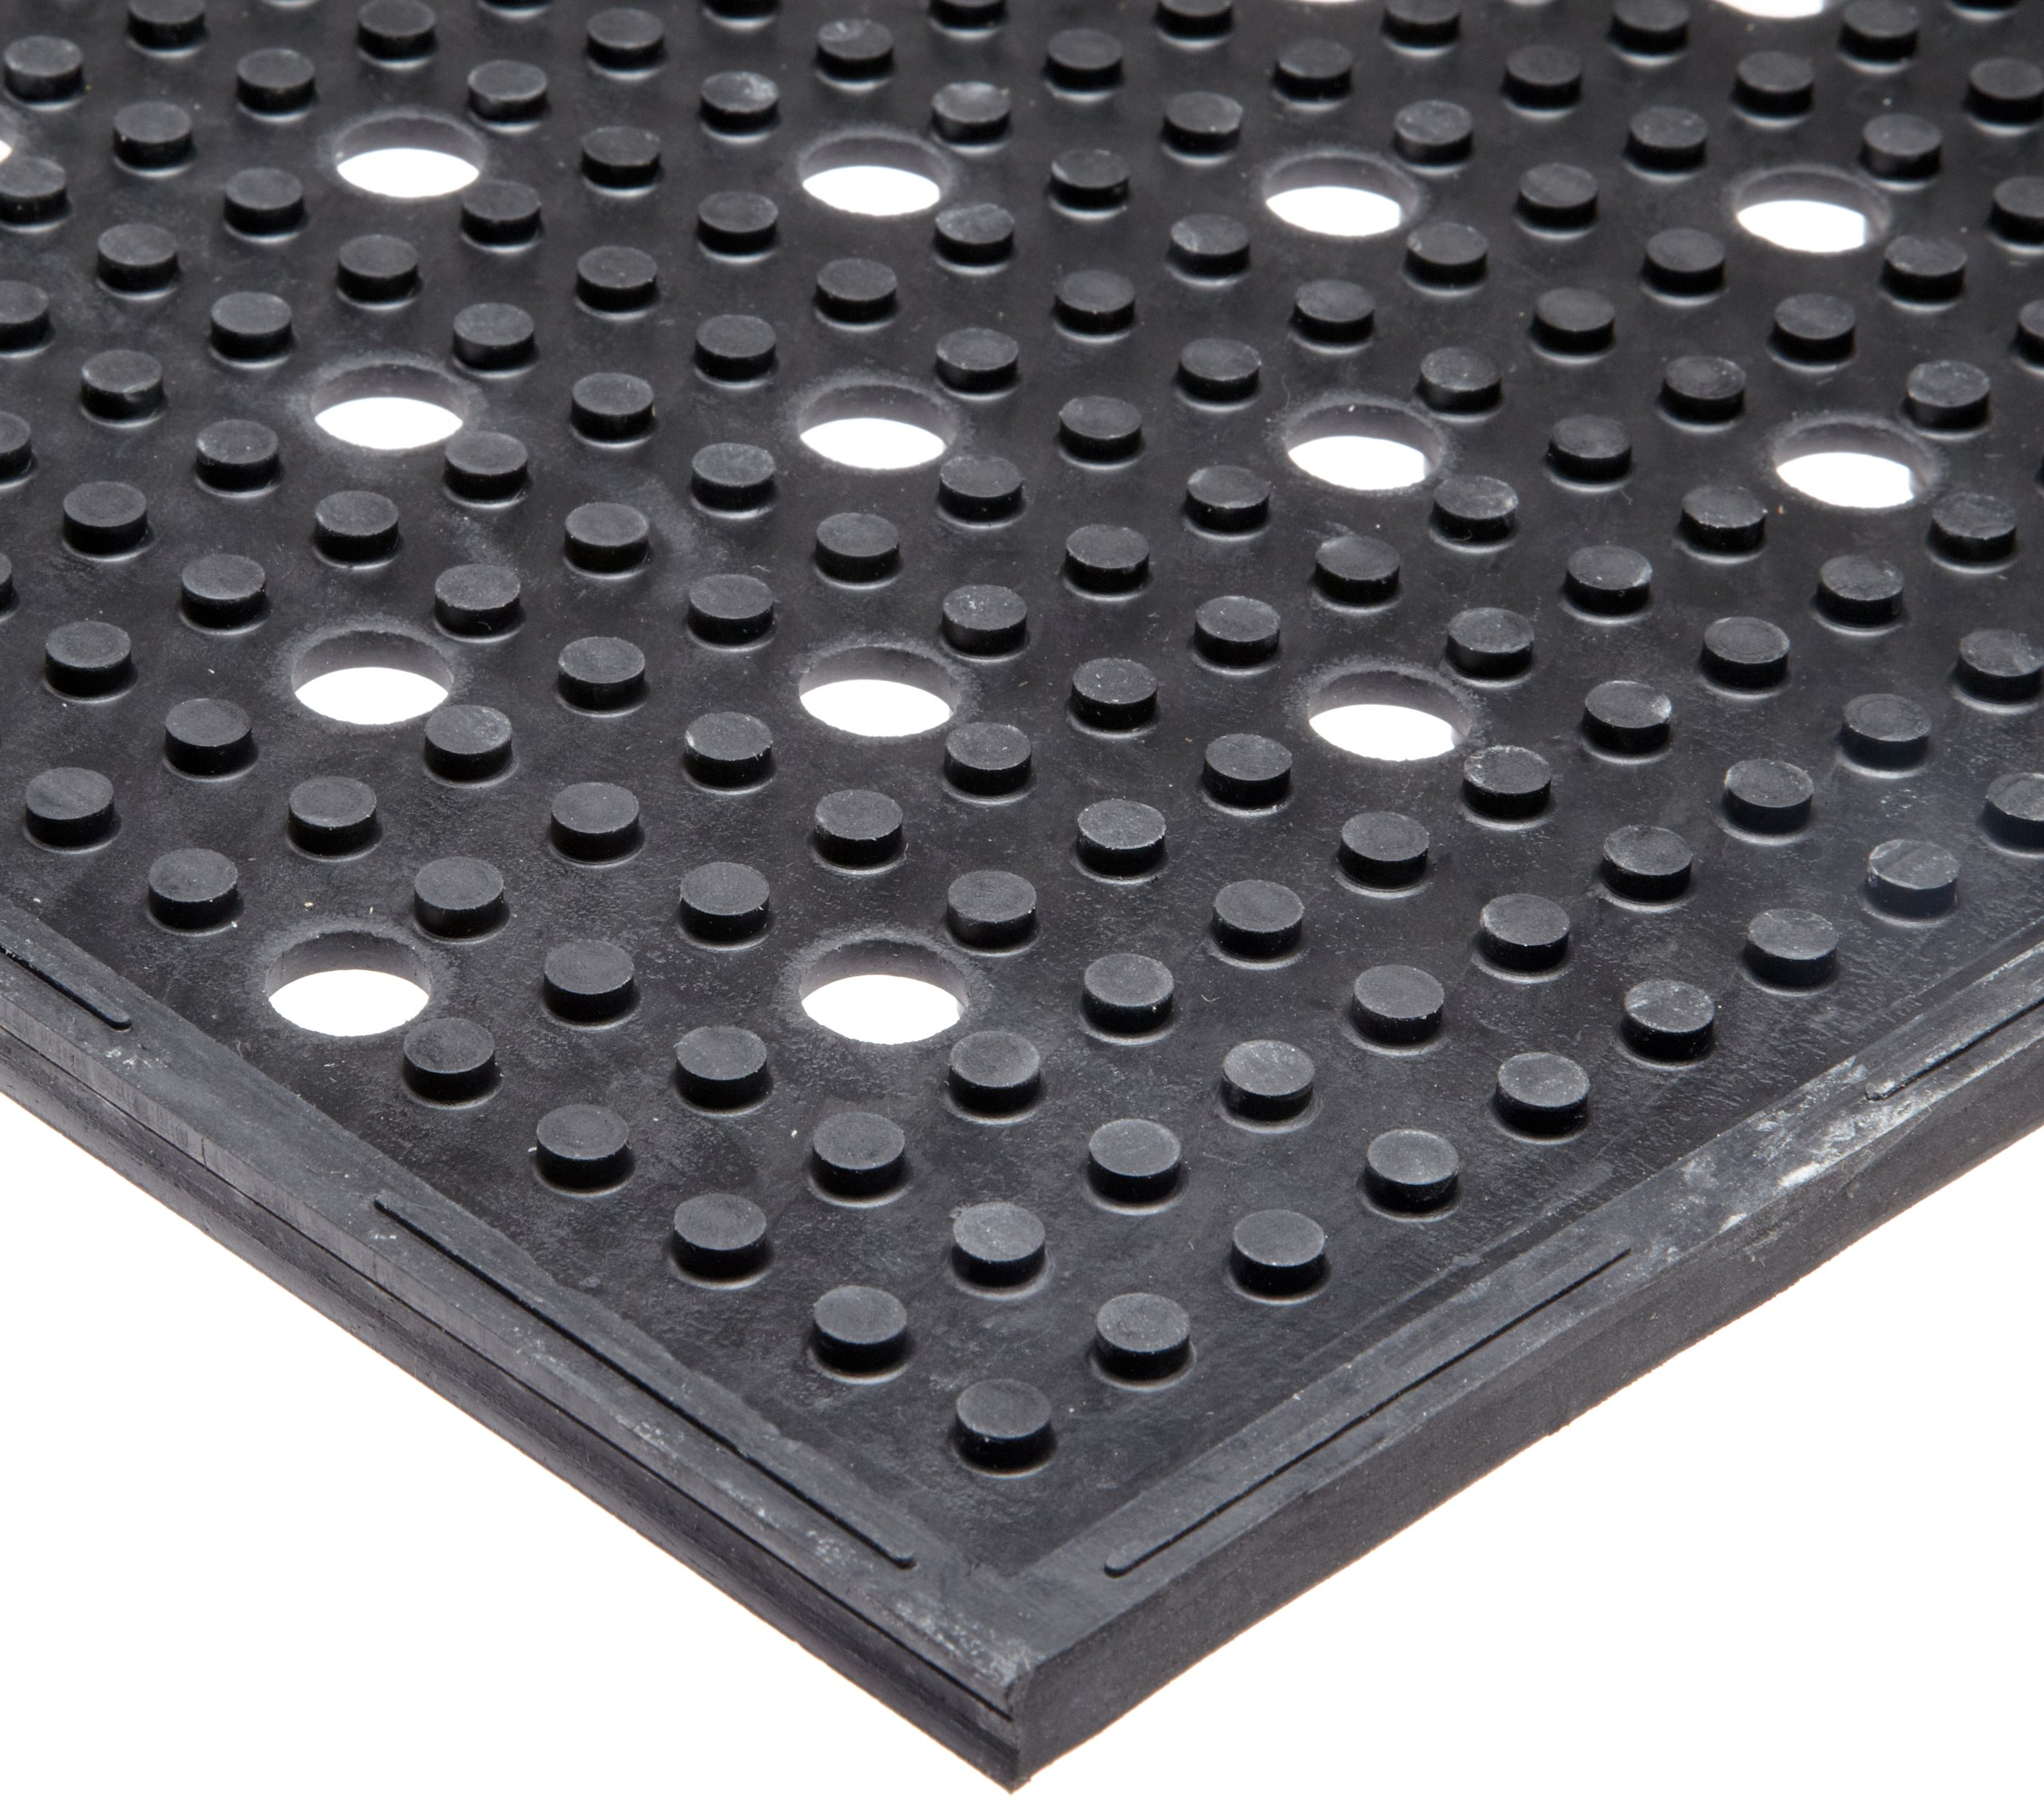 NoTrax T23 General Purpose Rubber Multi-Mat II Safety/Anti-Fatigue Mat, for Wet or Greasy Areas, 3' Width x 2' Length x 3/8'' Thickness, Black